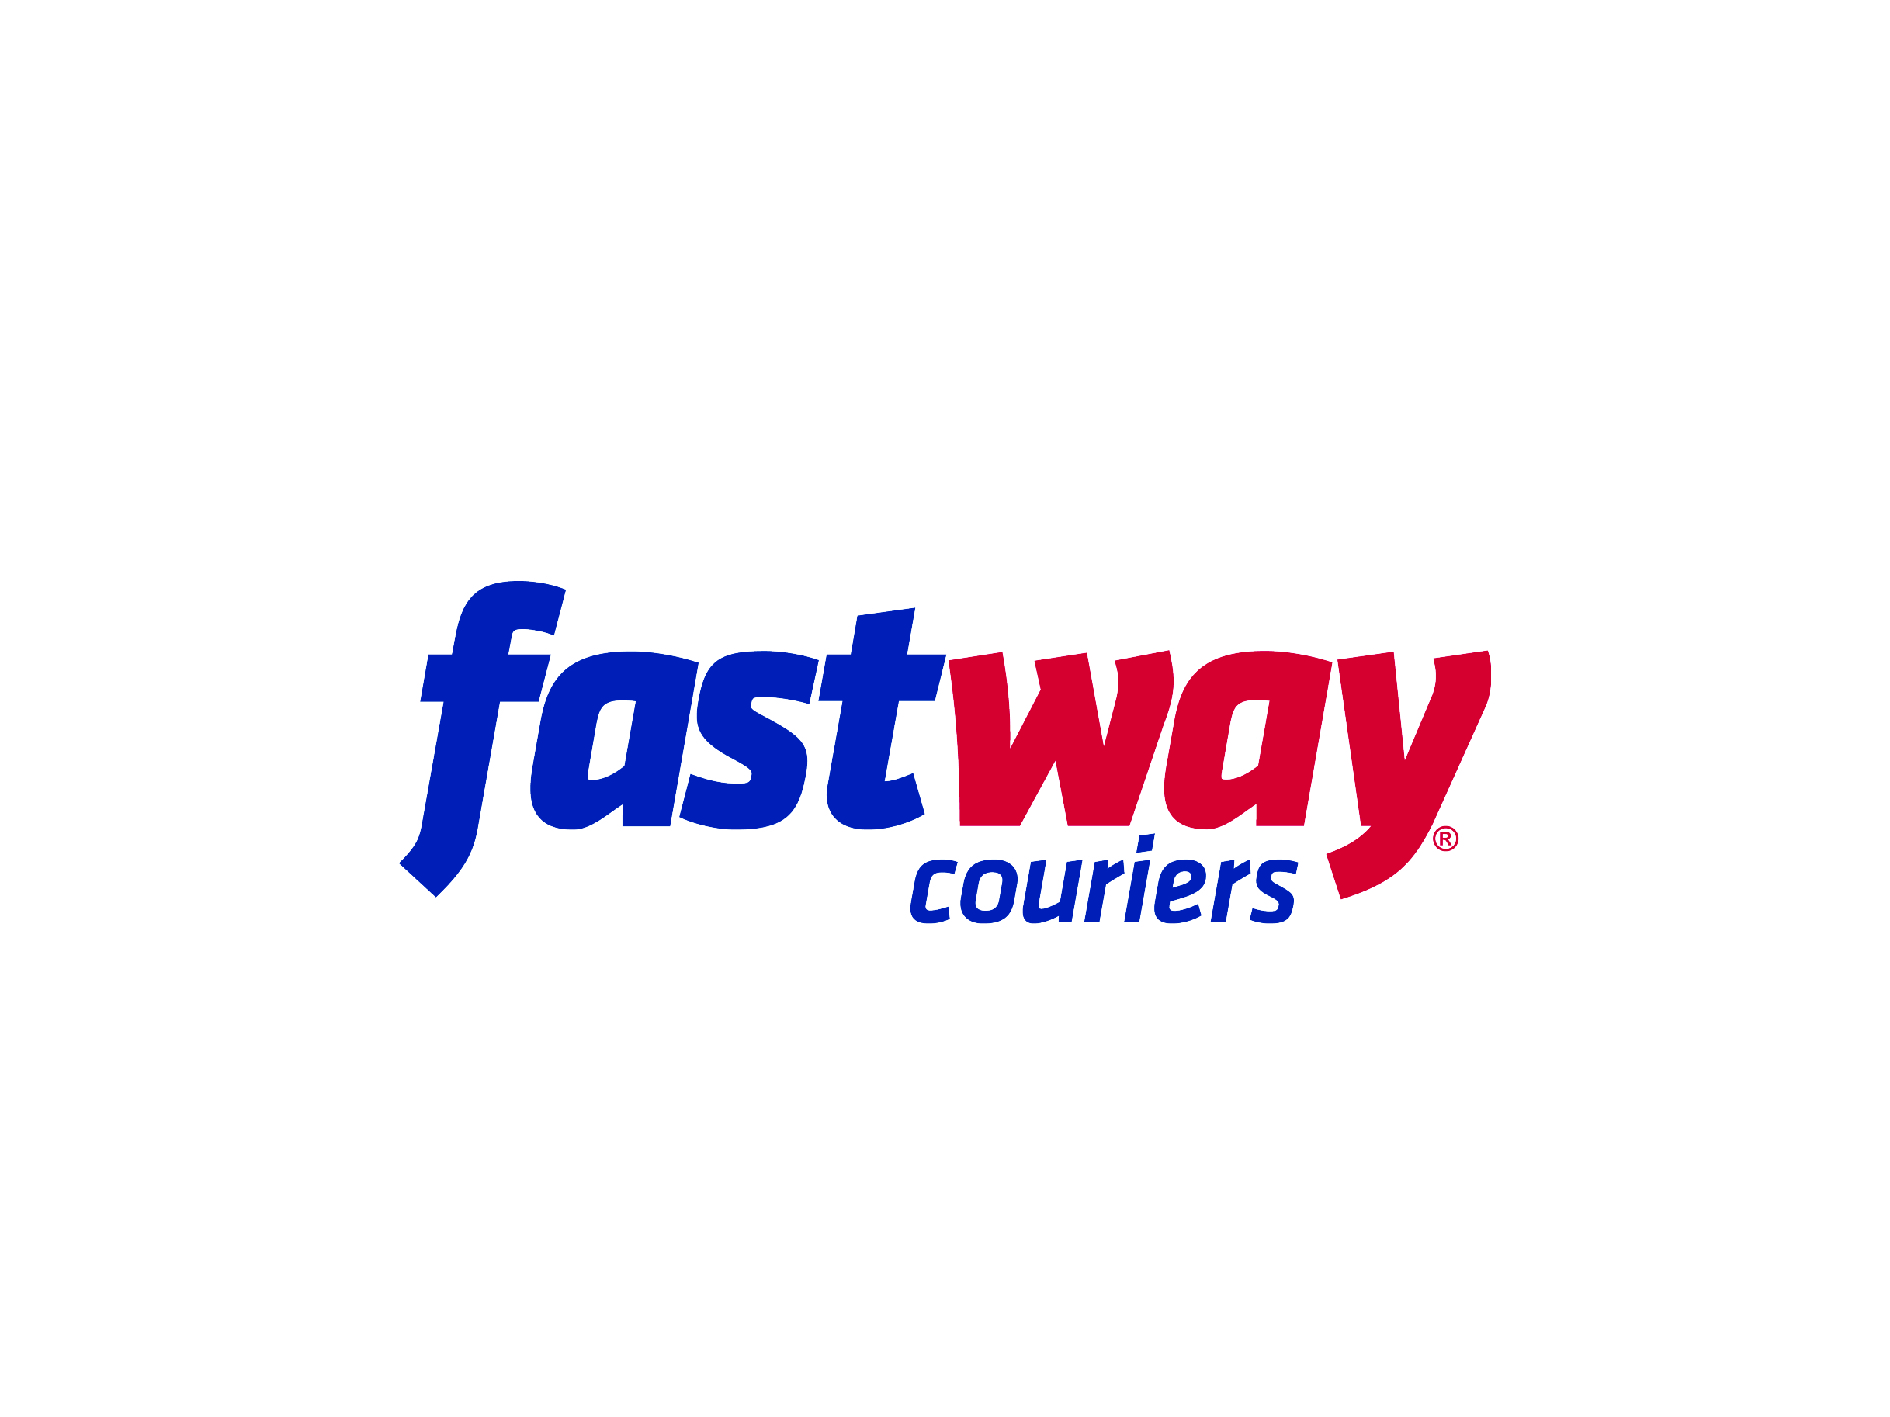 Fastway Couriers have been  our courier partner  since we first began. They courier items for Little Sprouts for free across New Zealand. They have also partnered with us on baby gear drives and fundraisers.Learn more about Fastway Couriers  here .